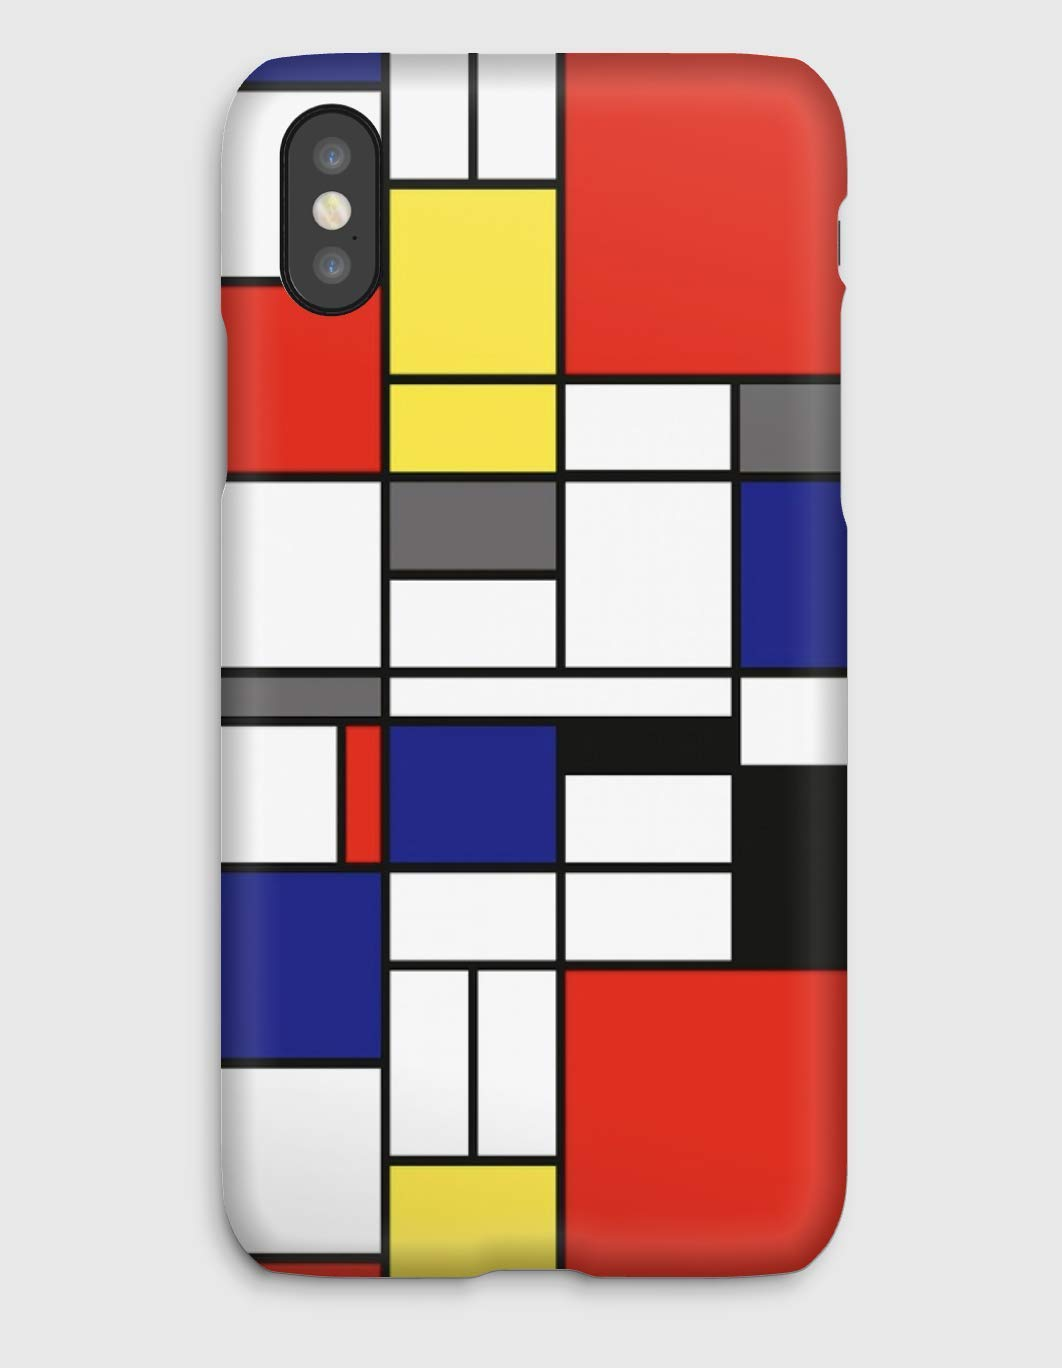 Mondrian, Cover iPhone X,XS,XS Max,XR, 8, 8+, 7, 7+, 6S, 6, 6S+, 6+, 5C, 5, 5S, 5SE, 4S, 4,